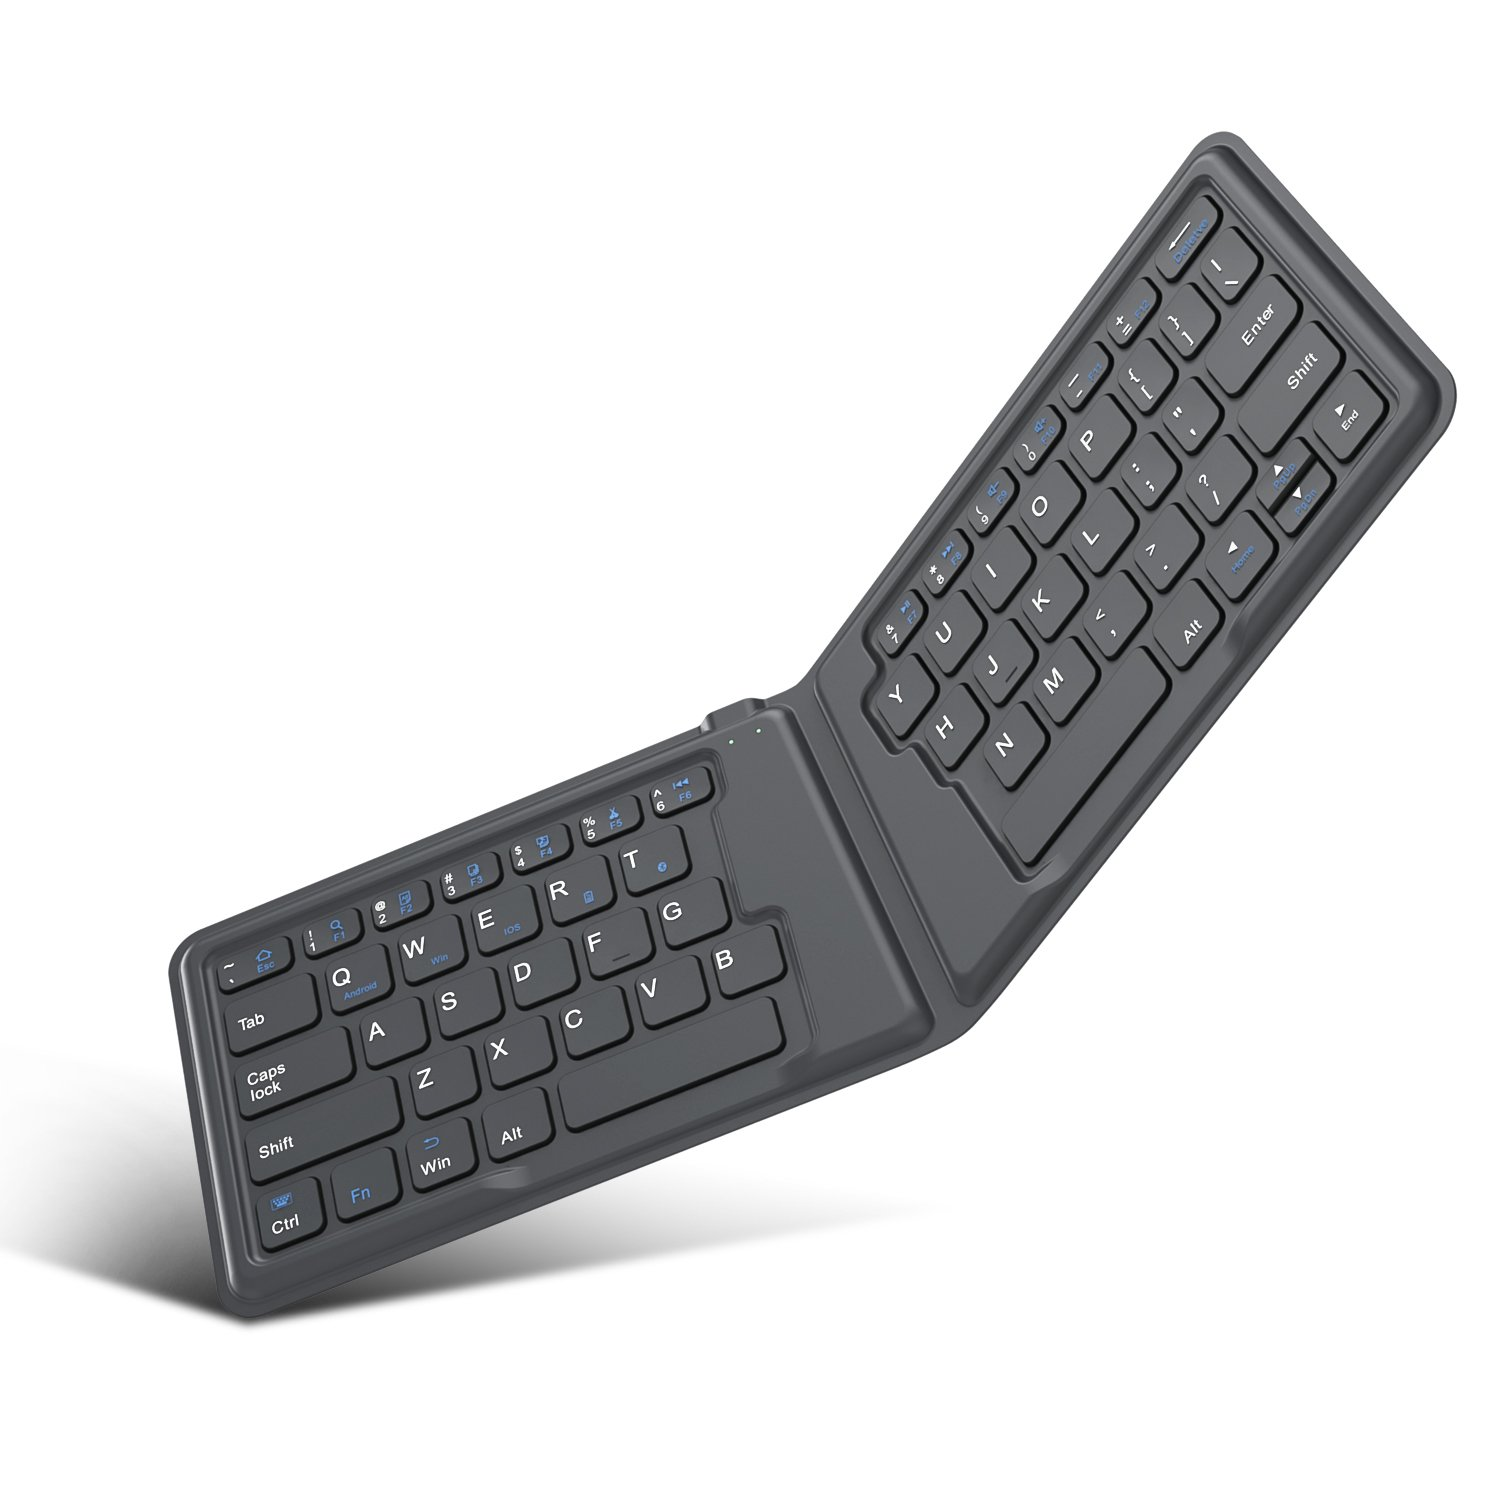 MoKo Wireless Bluetooth Keyboard, Ultra-Thin Foldable Rechargeable Keyboard for iPhone, iPad 9.7, iPad pro, Fire HD 10, Compatible with all iOS, Android and Windows Tablets Smartphones Devices, Gray